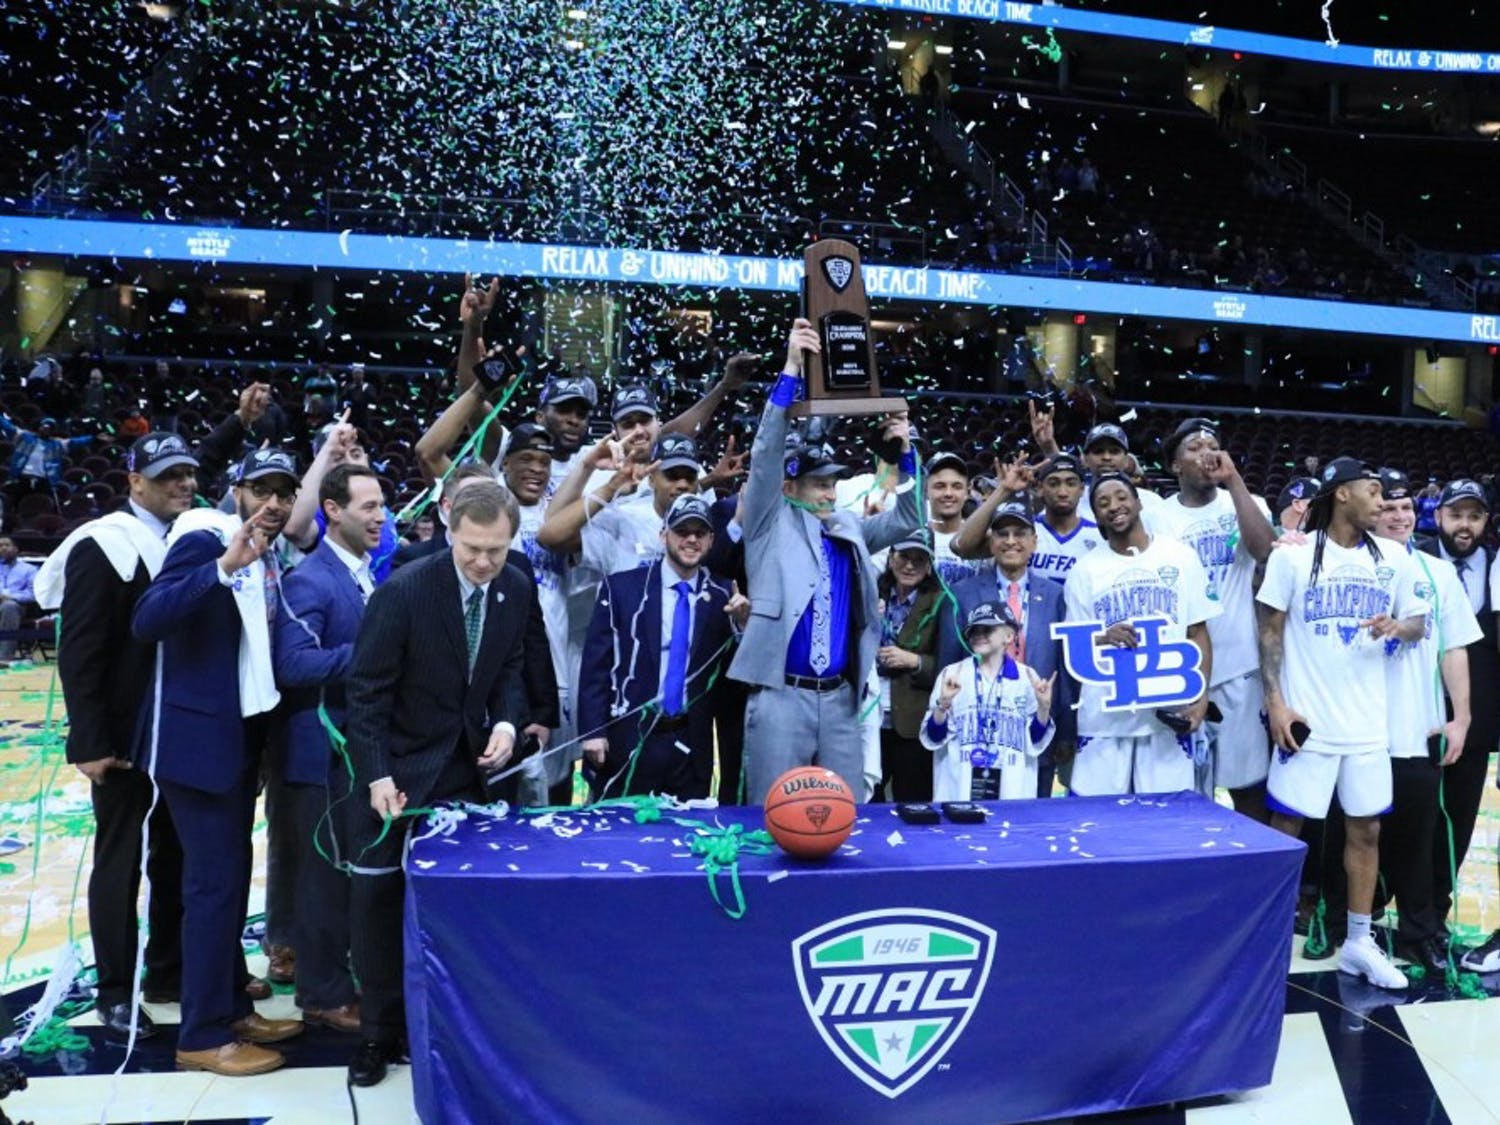 Bulls head coach Nate Oats lifts the MAC tournament trophy over his head. The Bulls have won three of the last four MAC tournaments and are both the MAC regular season and MAC tournament champions this year.